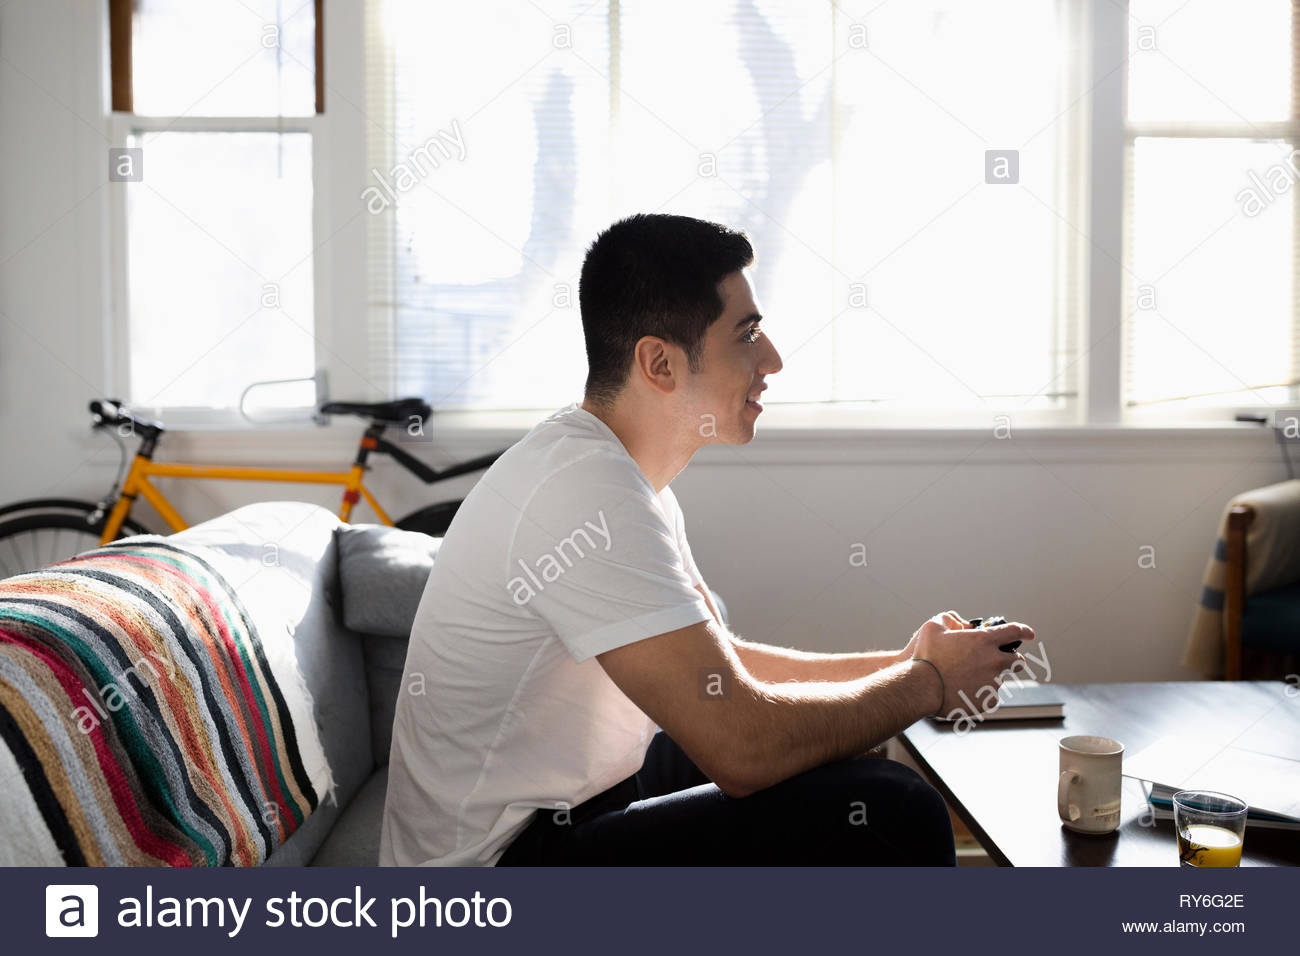 Young Latinx man playing video game in living room - Stock Photo